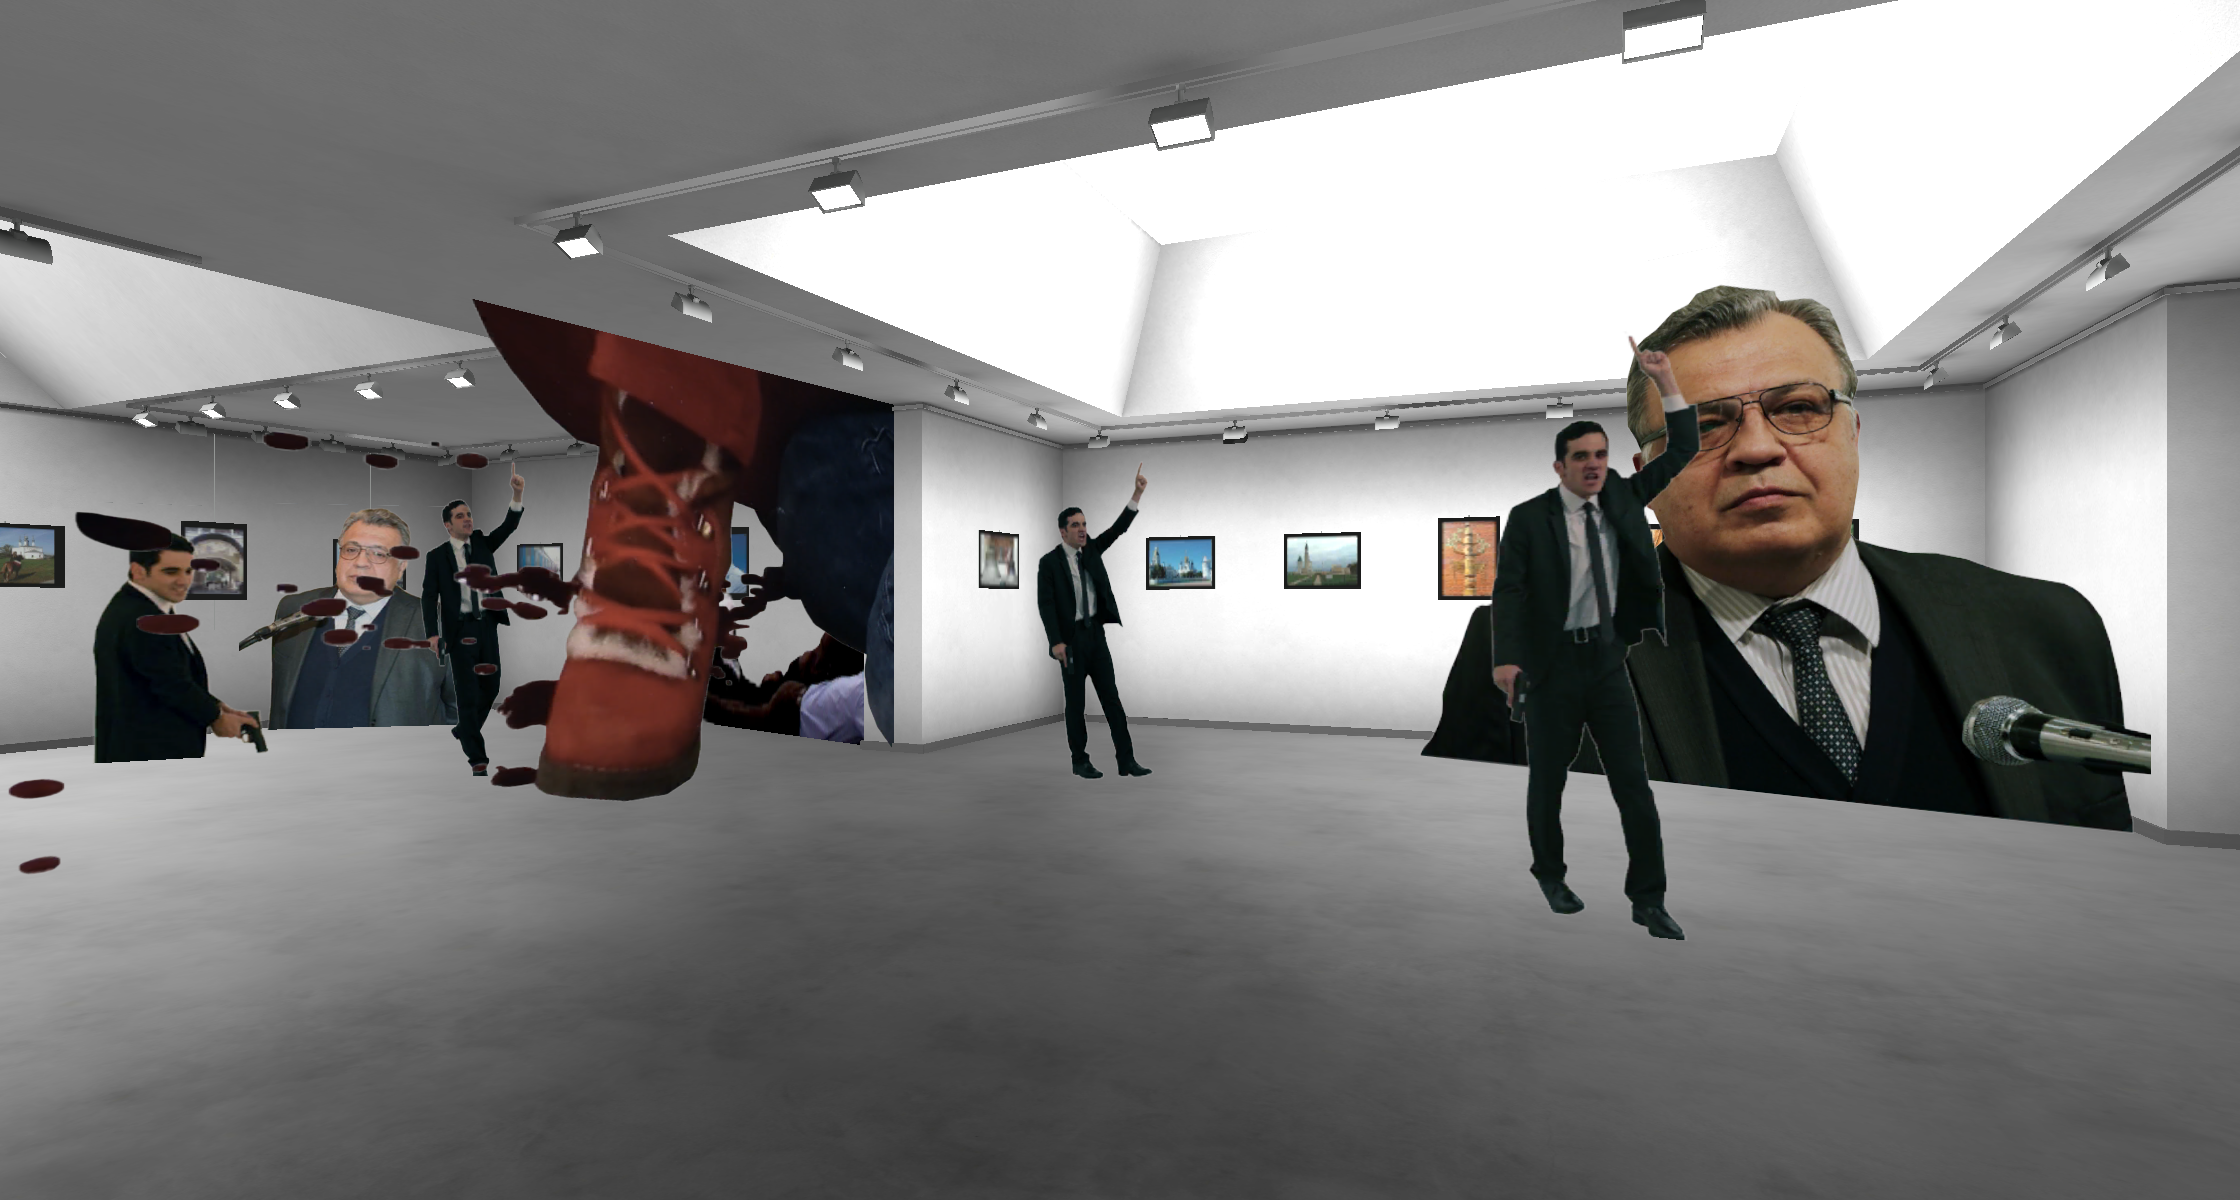 Woe From Wit, Broomberg & Chanarin, VR, 2019